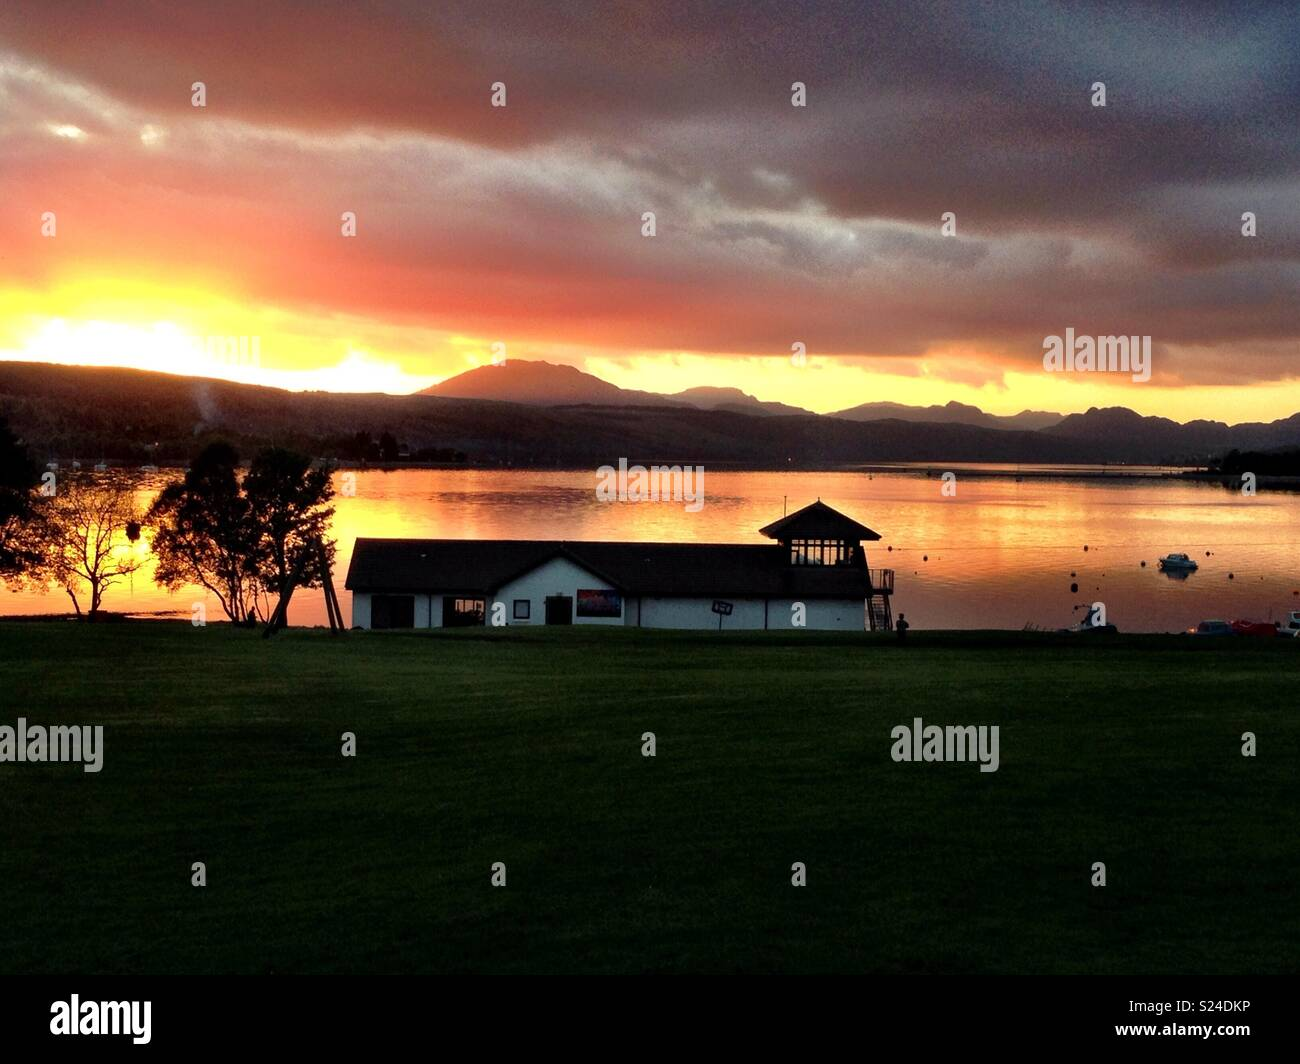 Roseneath Caravan Park in the banks of the Gareloch in Scotland at sunset - Stock Image